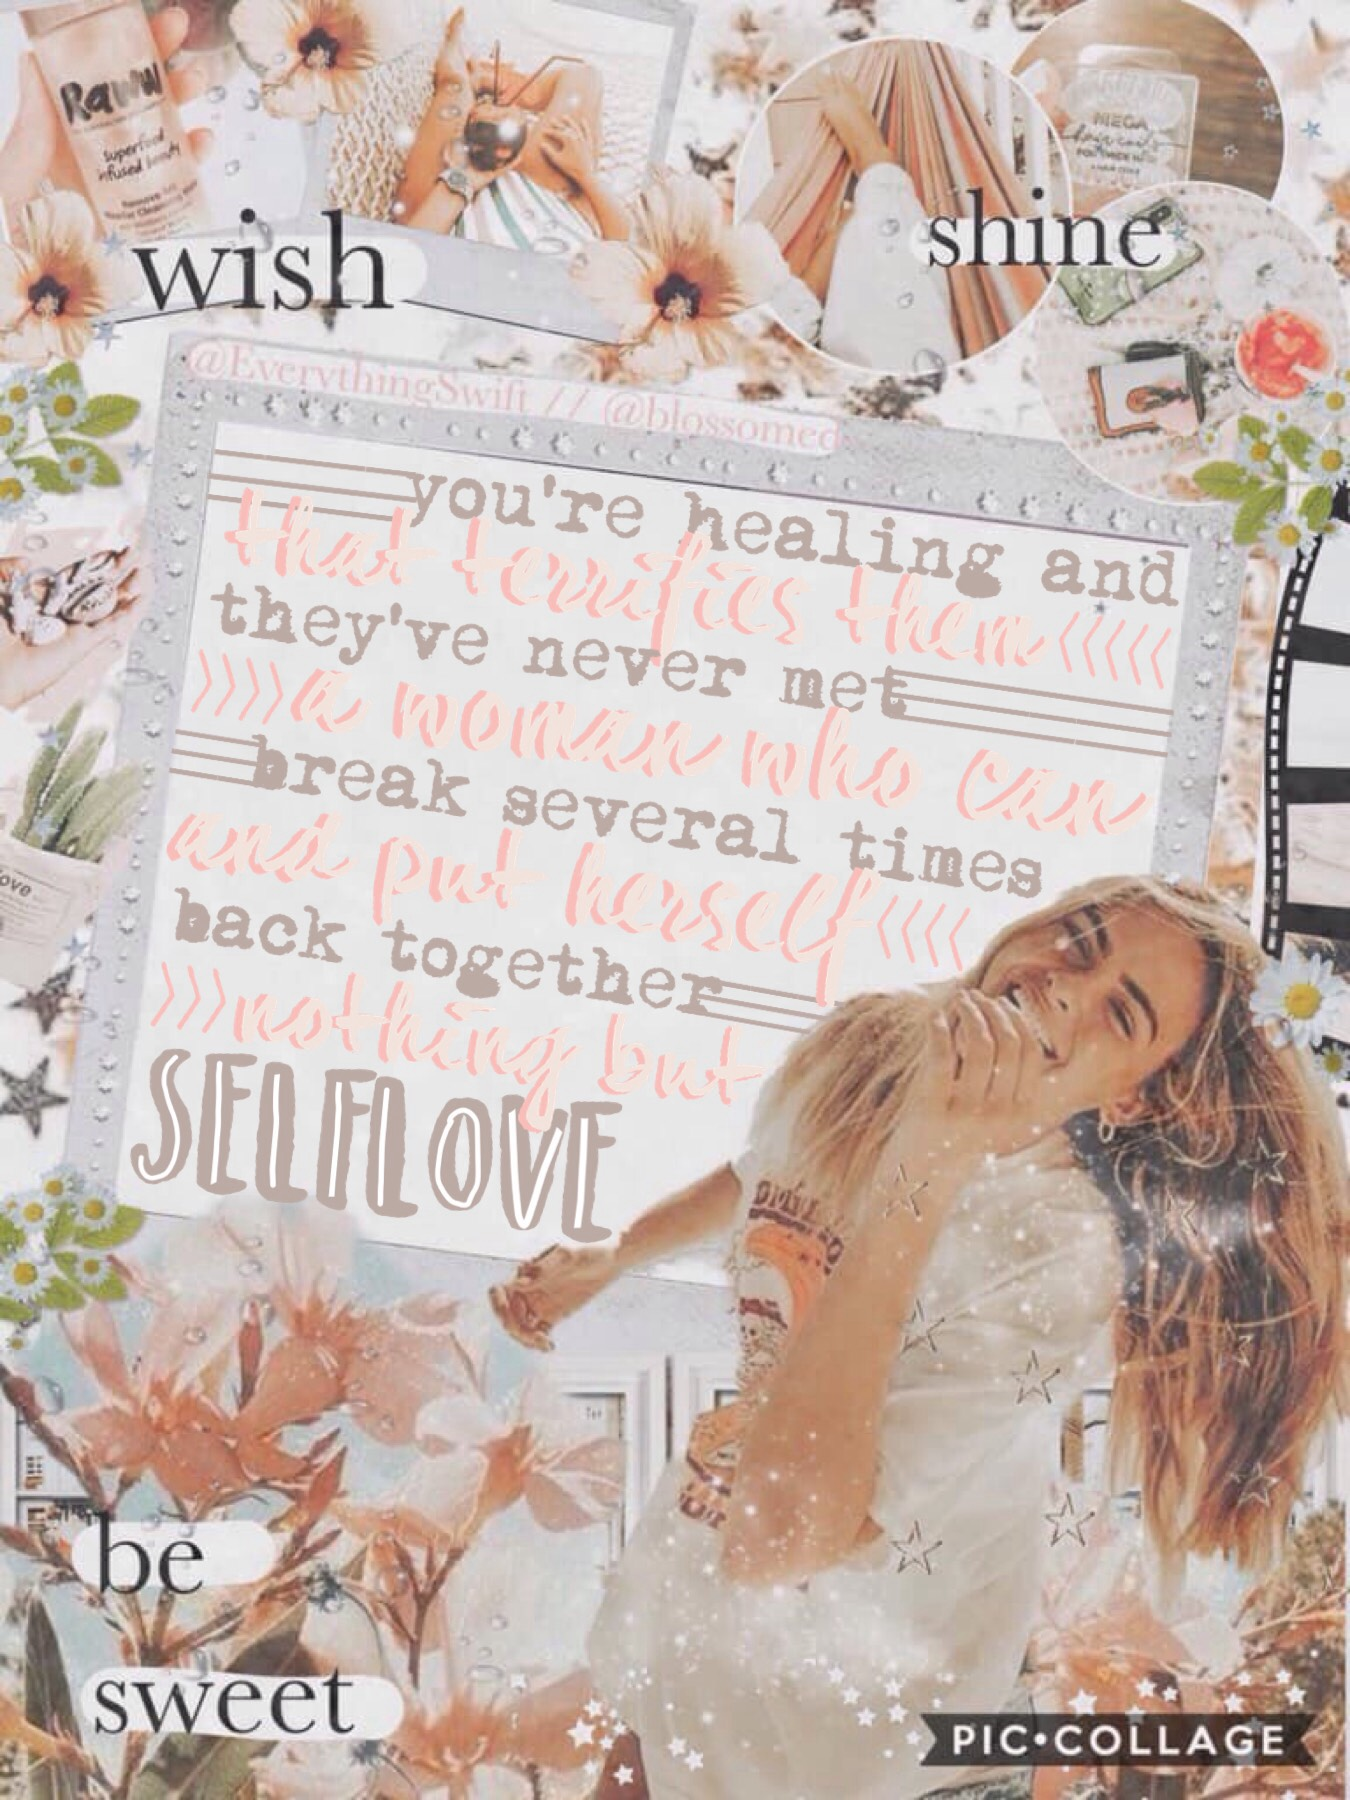 ✰ t a p  f o r  c o l l a b ✰ collab with my incredible bestie blossomed- Liss made this absolutely stunning bg! btw contest winners I will get the prizes asap qotd: what are you wearing rn? aotd: pj shorts and an oversized t-shirt